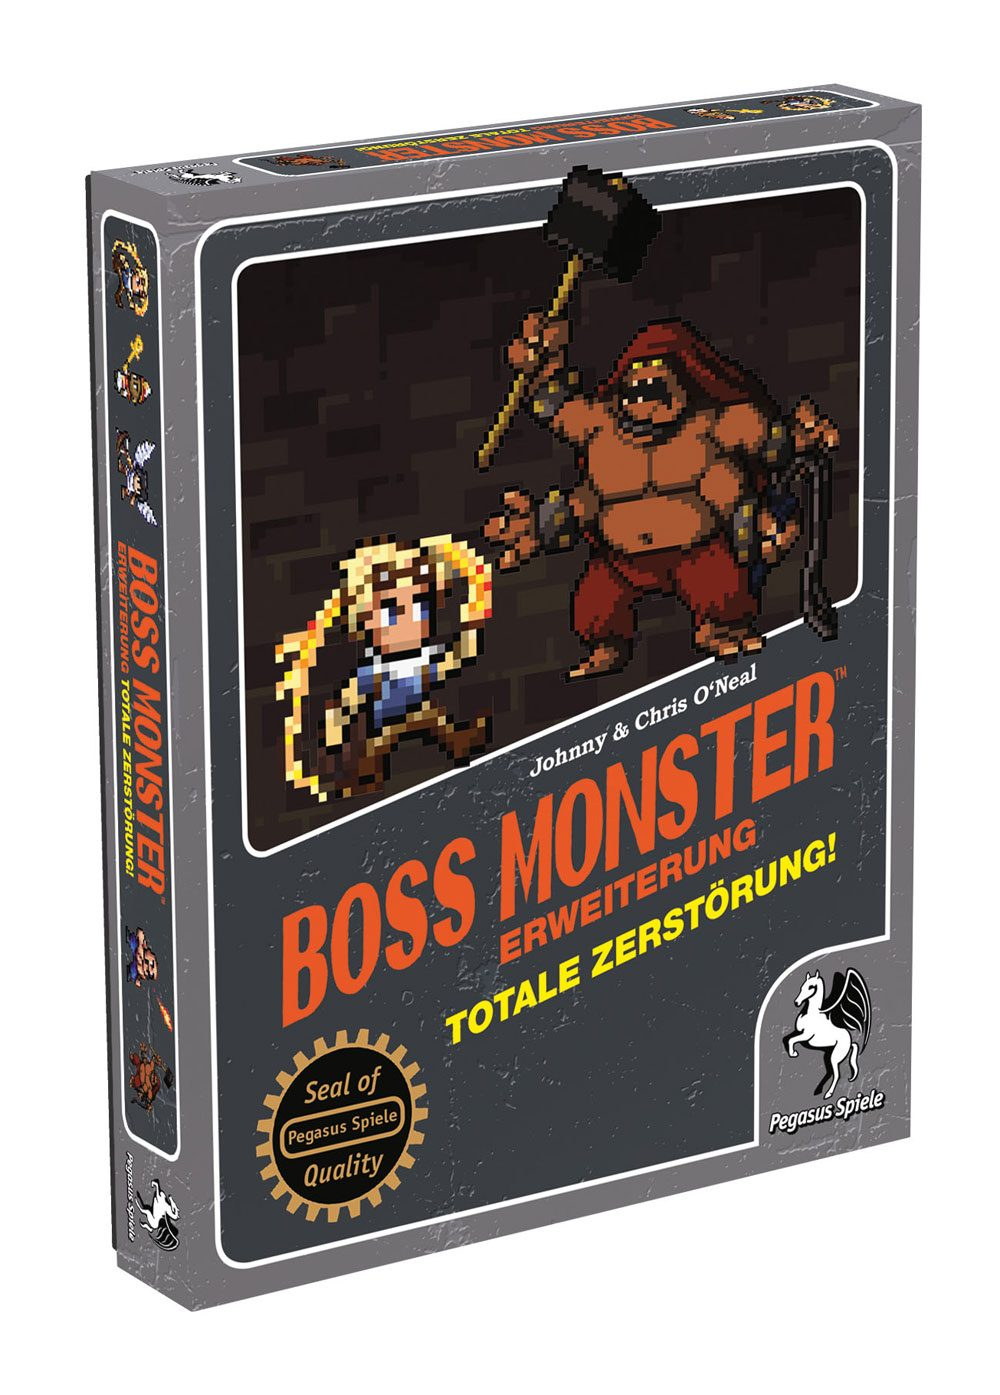 Boss Monster Card Game Expansion Totale Zerstörung! *German Version*